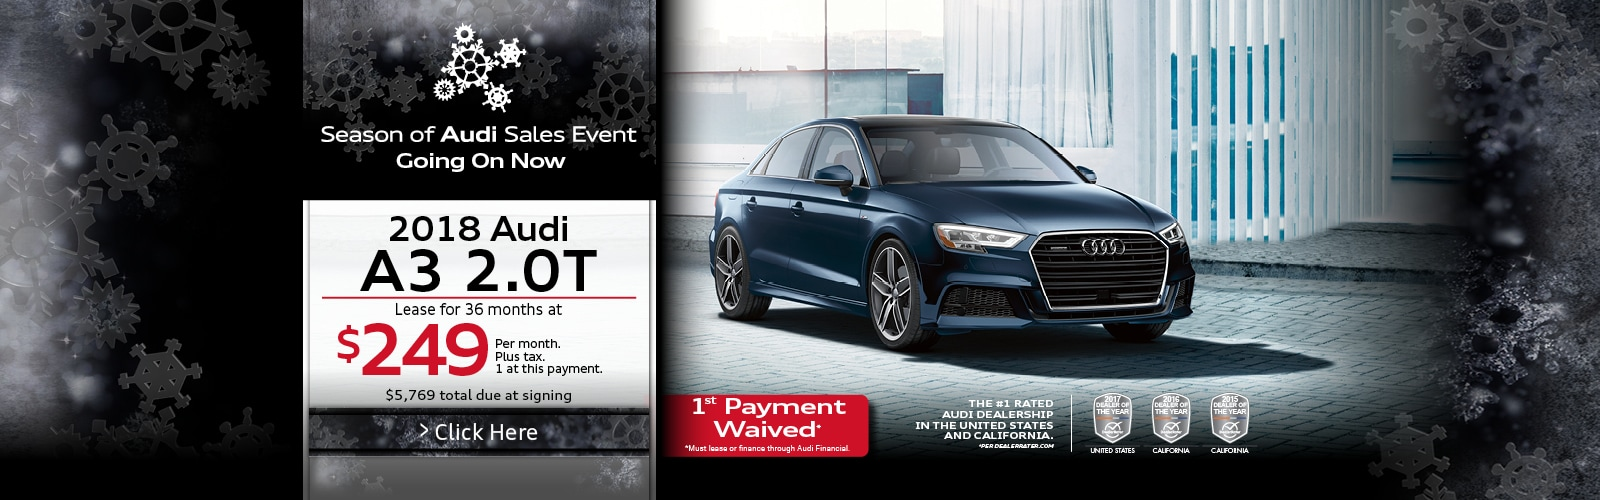 2018 Audi A3 lease specials